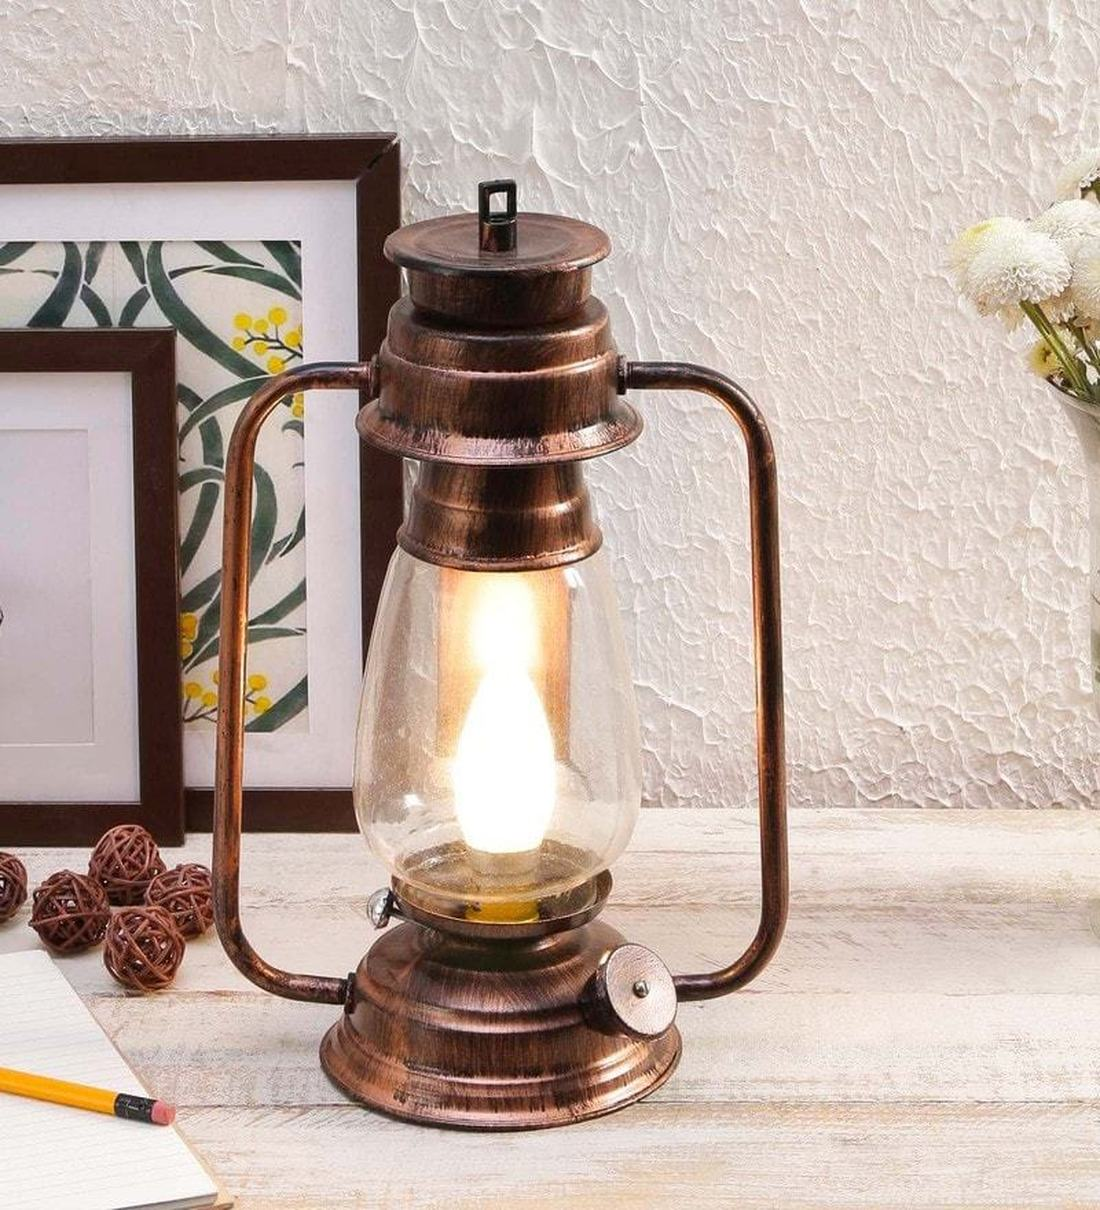 Buy Transparent Glass Shade Table Lanterns With Copper Base By Tu Casa Online Table Lanterns Lamps Lamps Lighting Pepperfry Product